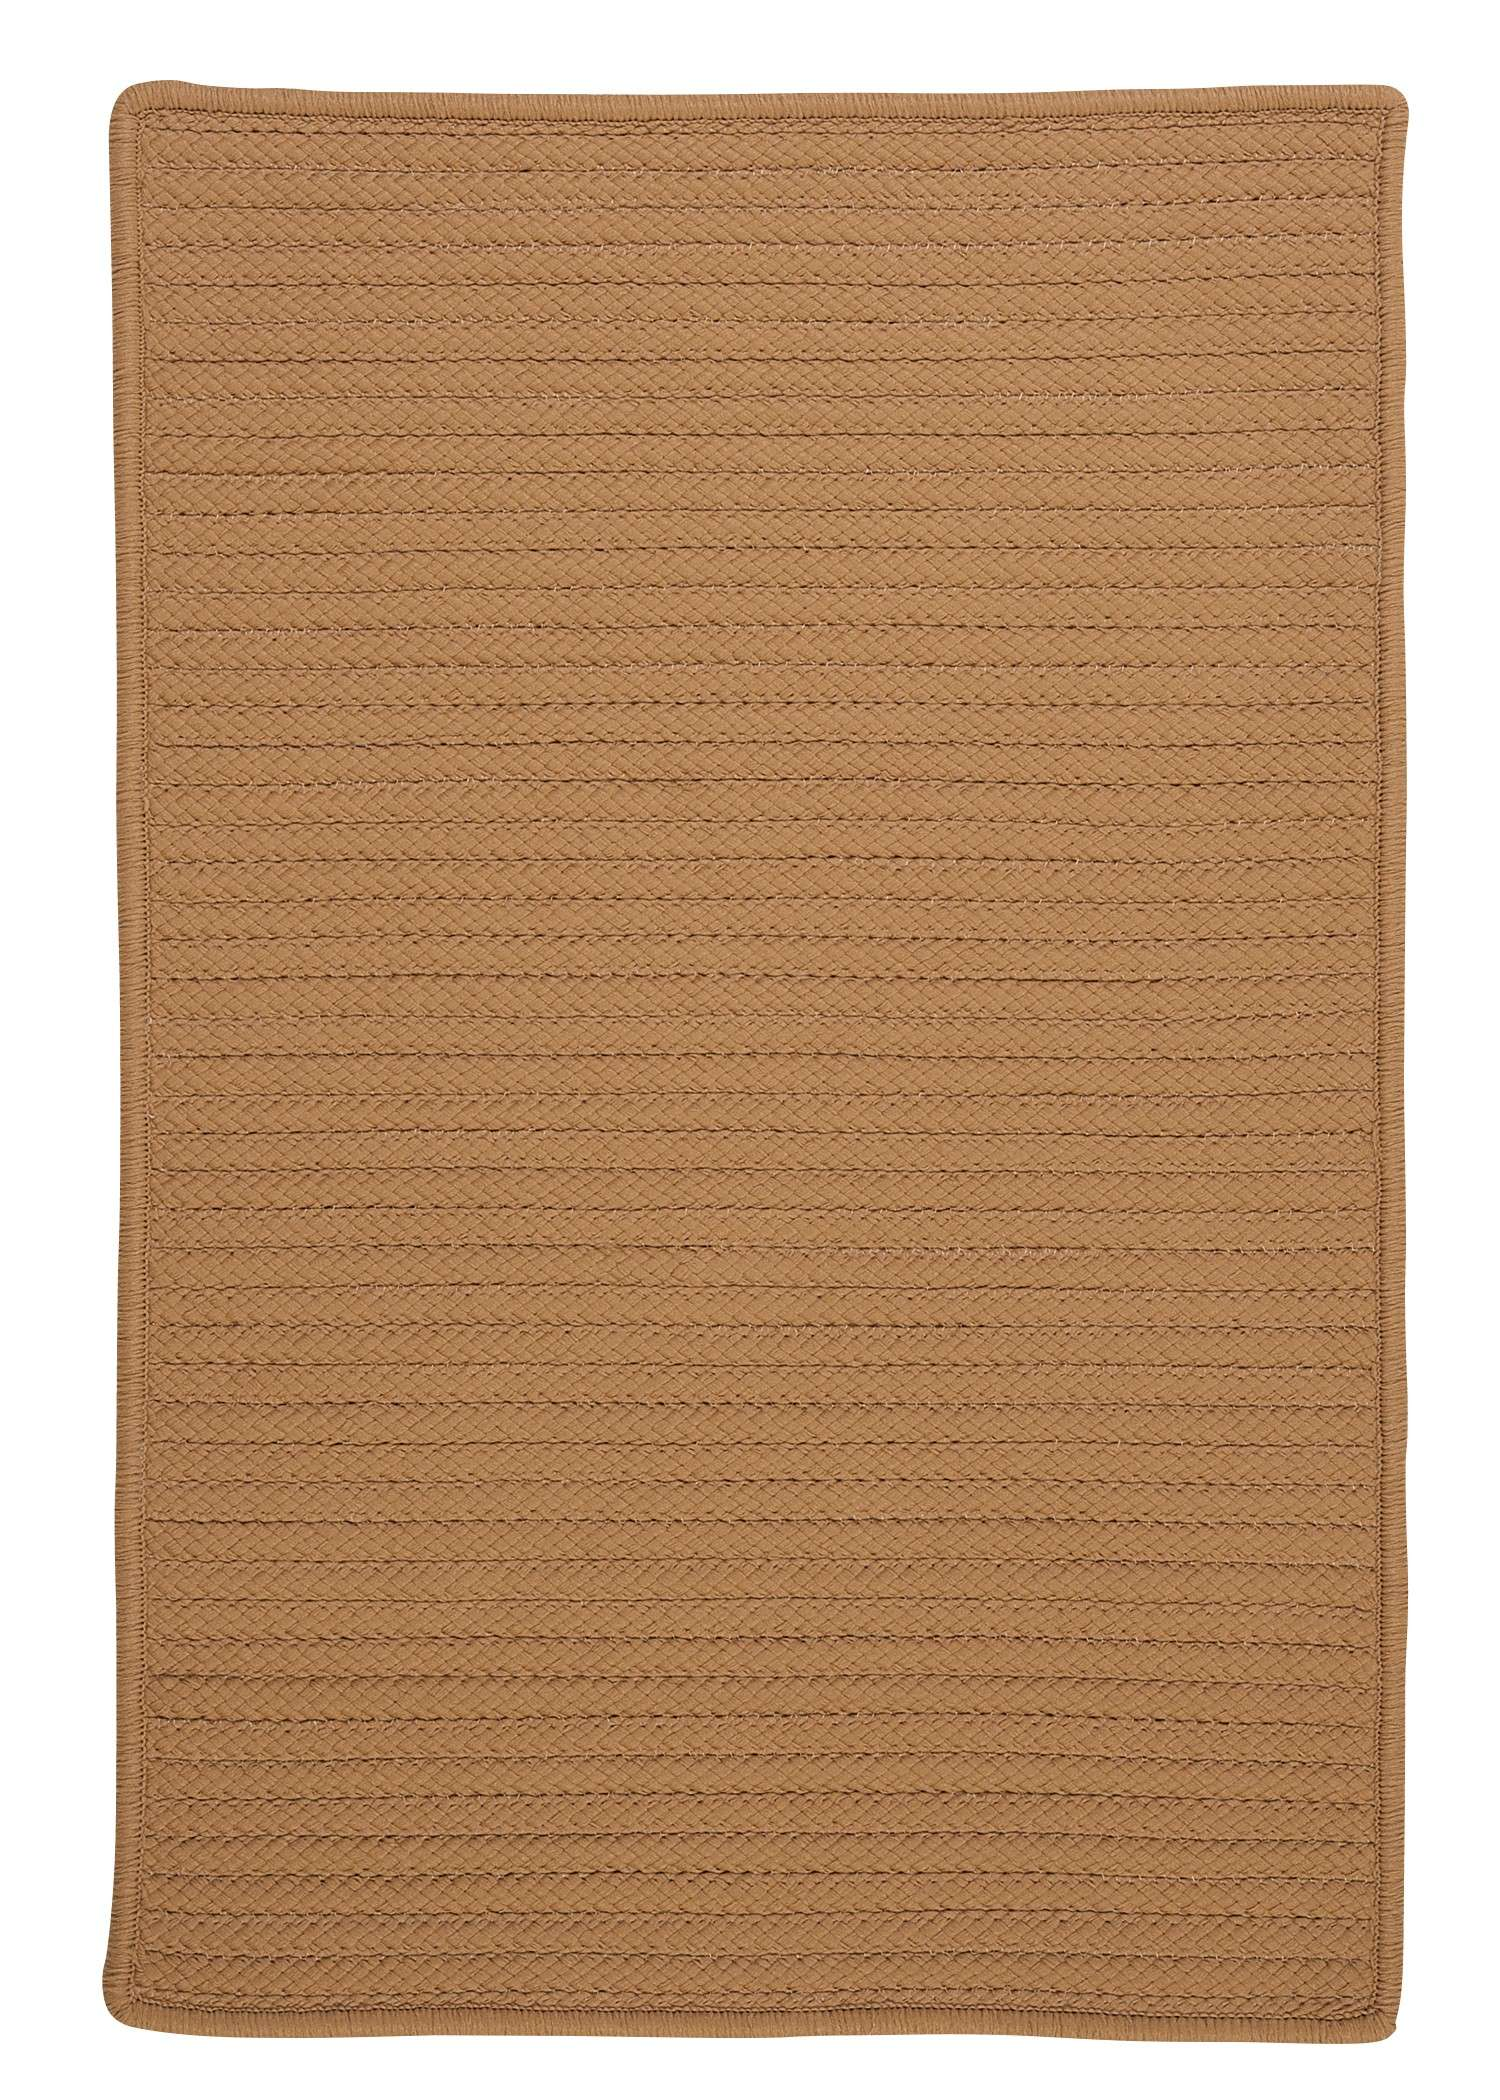 Simply Home Solid Topaz 2'x4' Rectangular Rug